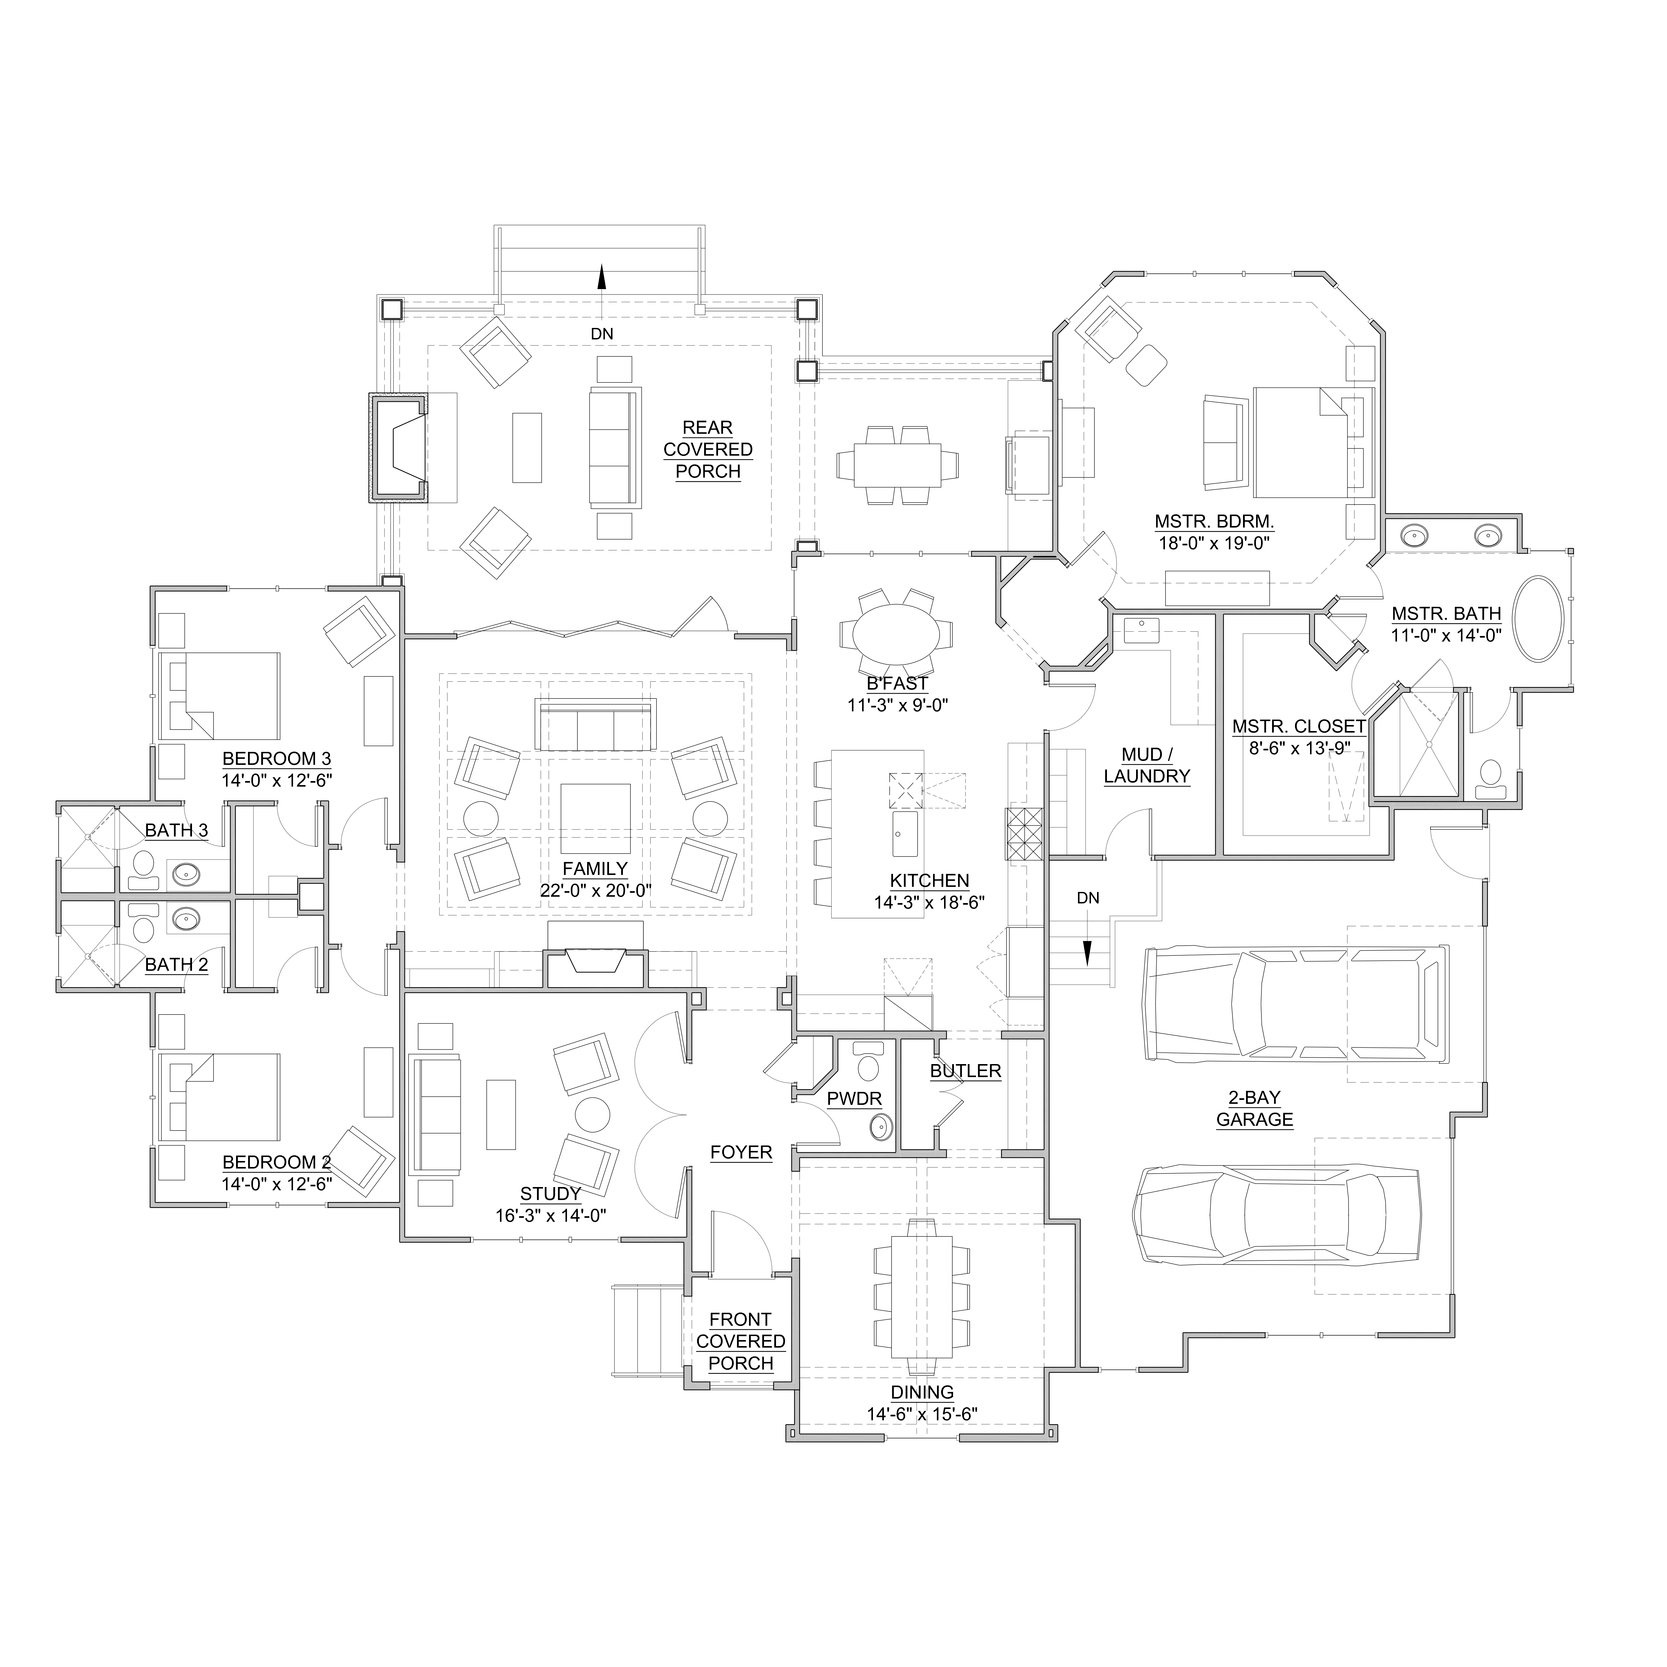 Riverchase_Britton A CRAWL_(2) First Floor Plan [24x36].jpg